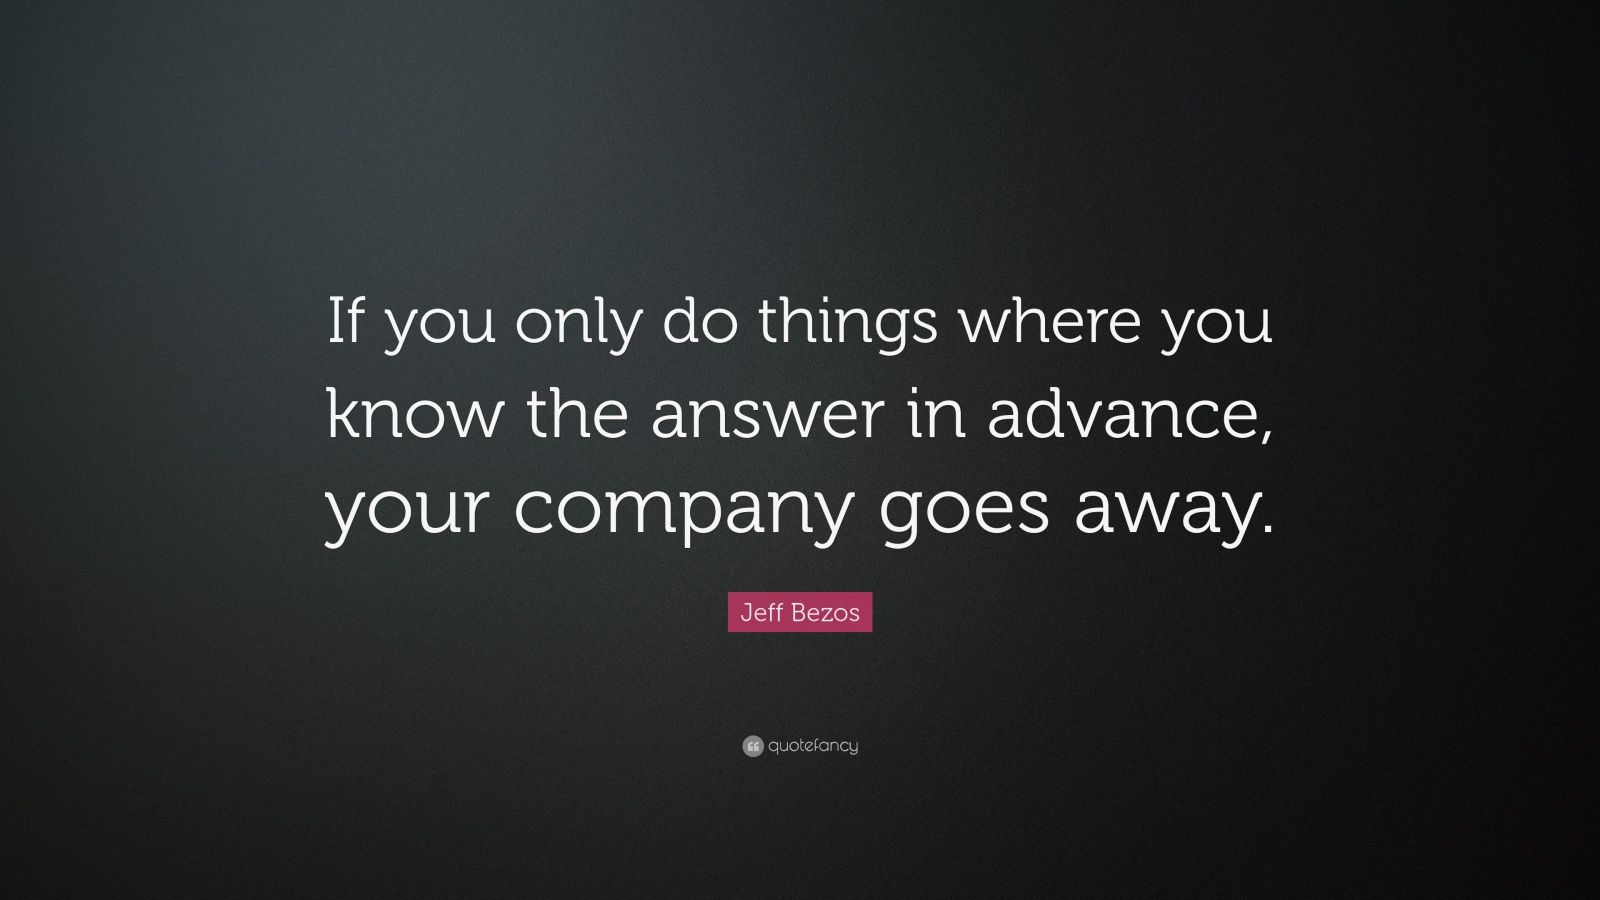 """Jeff Bezos Quote: """"If you only do things where you know the answer in advance, your company goes away."""""""